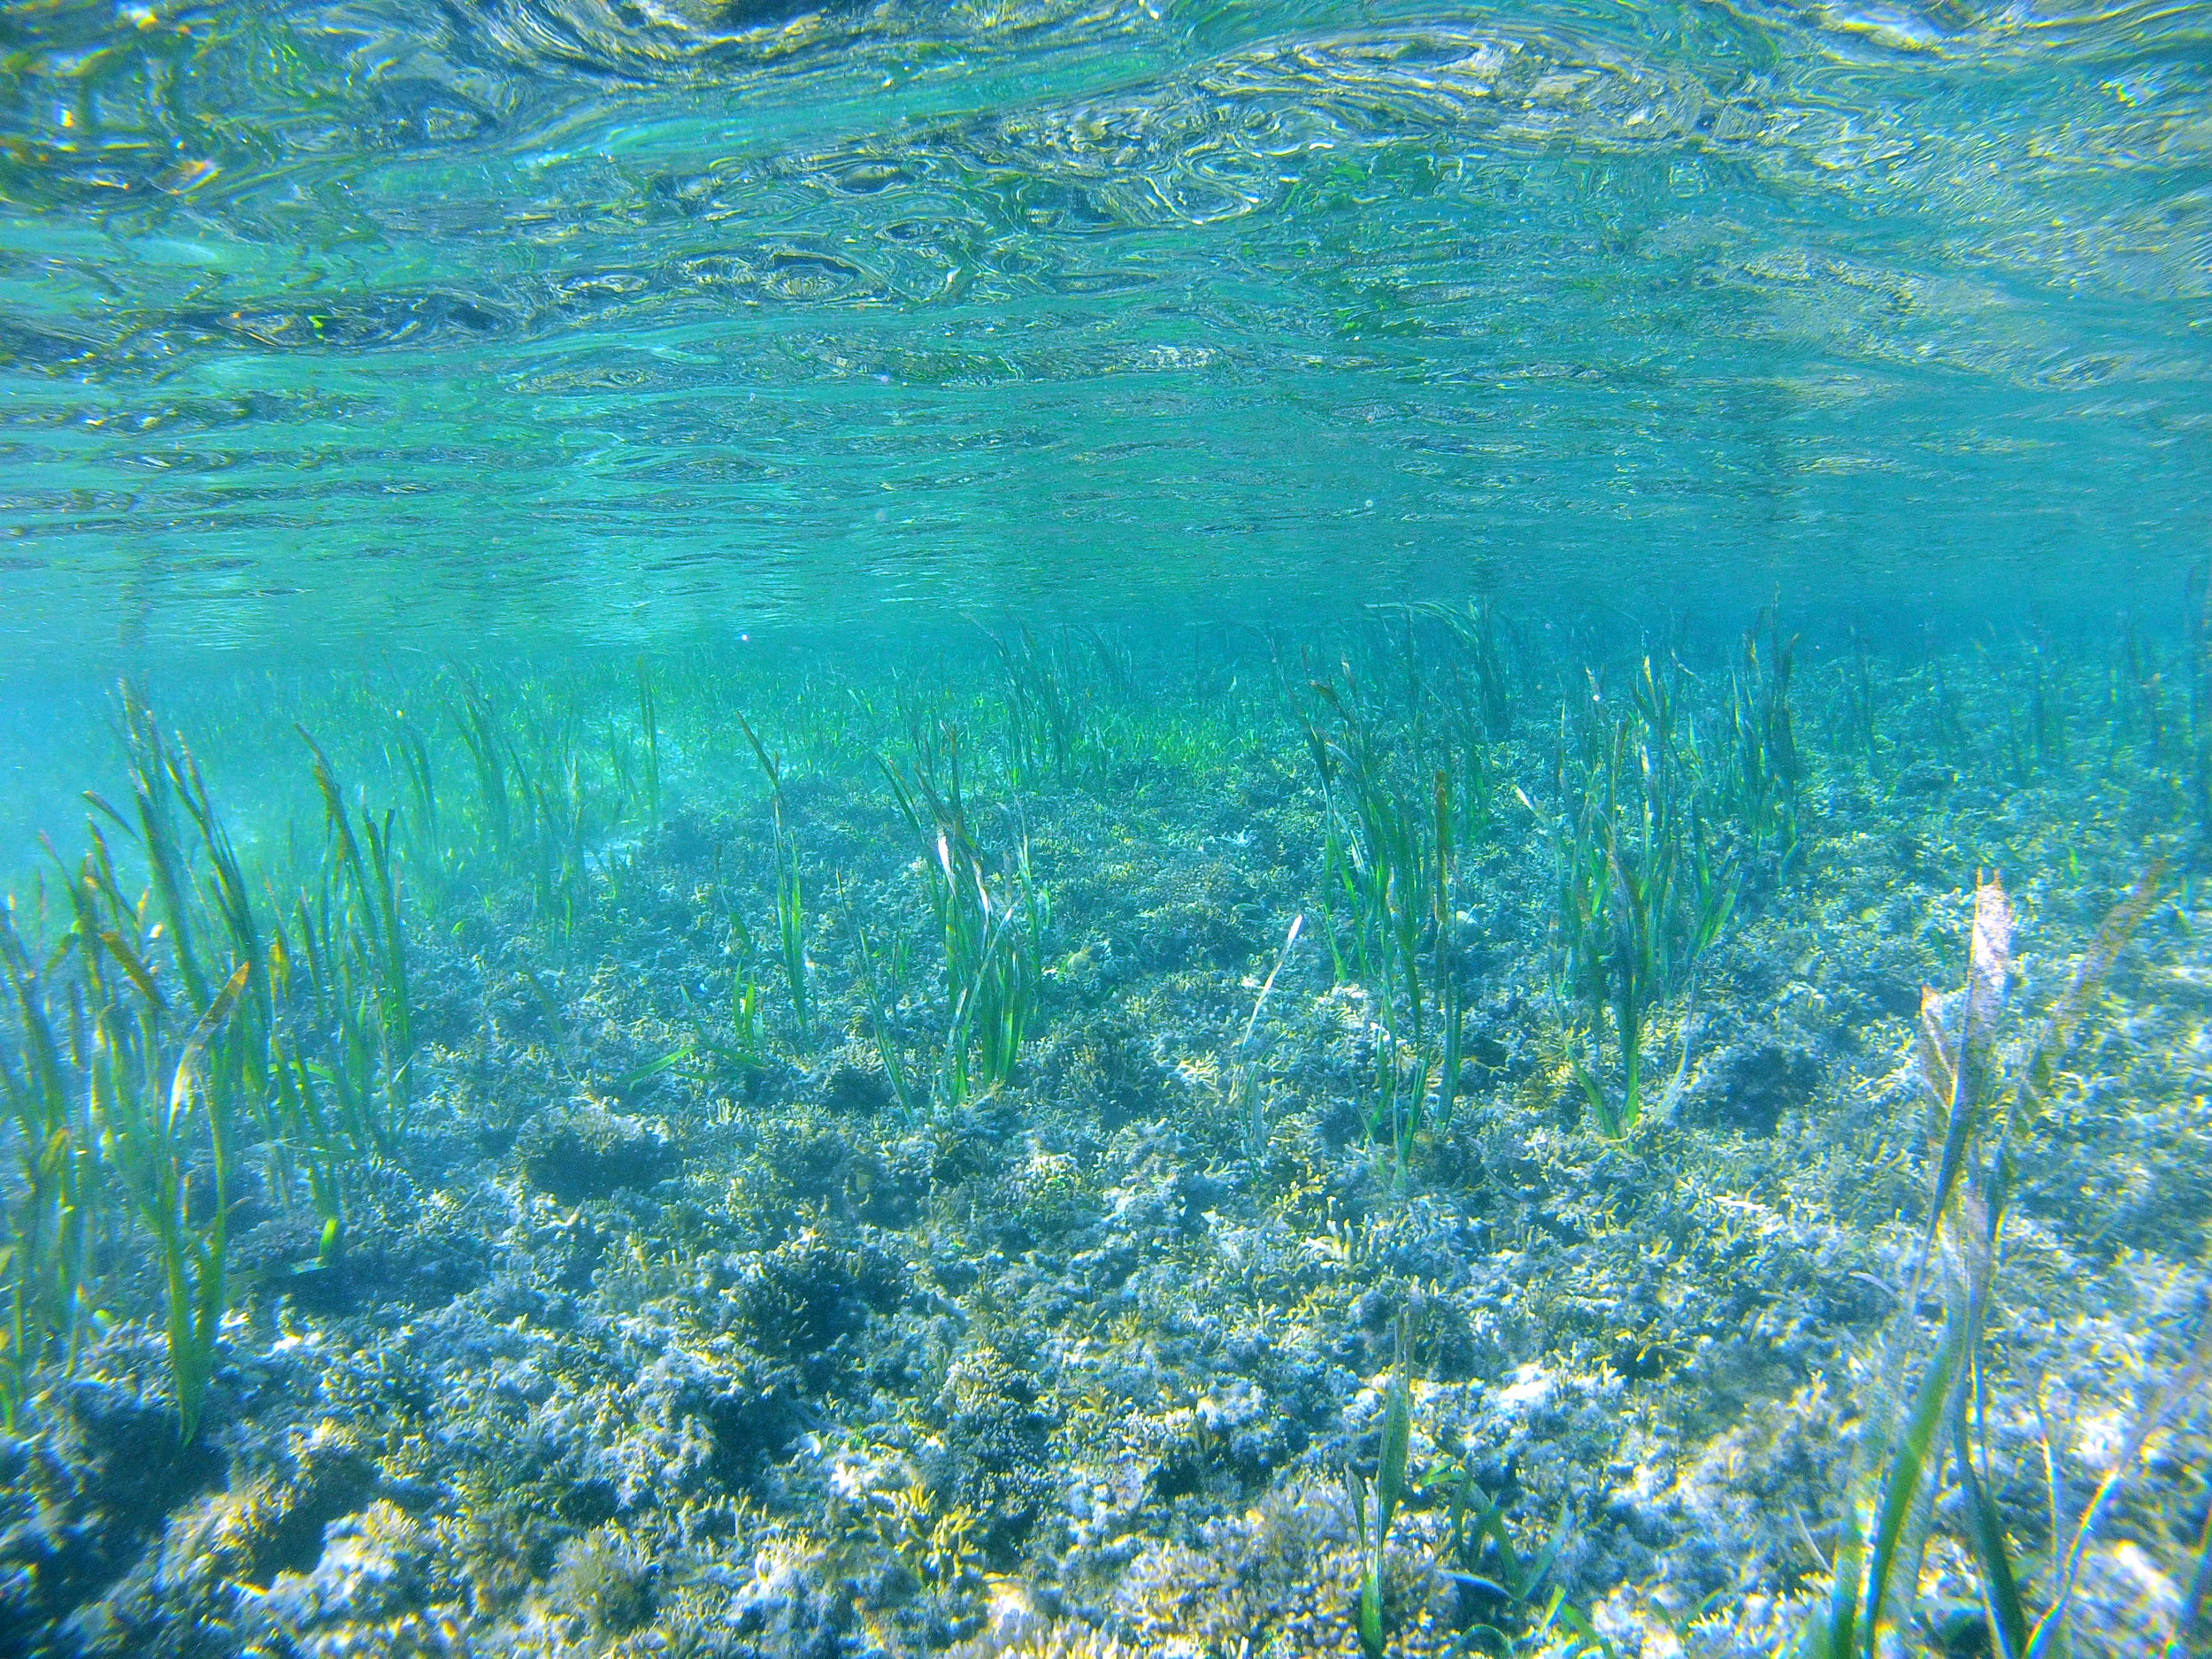 Tropical seagrass meadow in The Republic of Palau (2013)